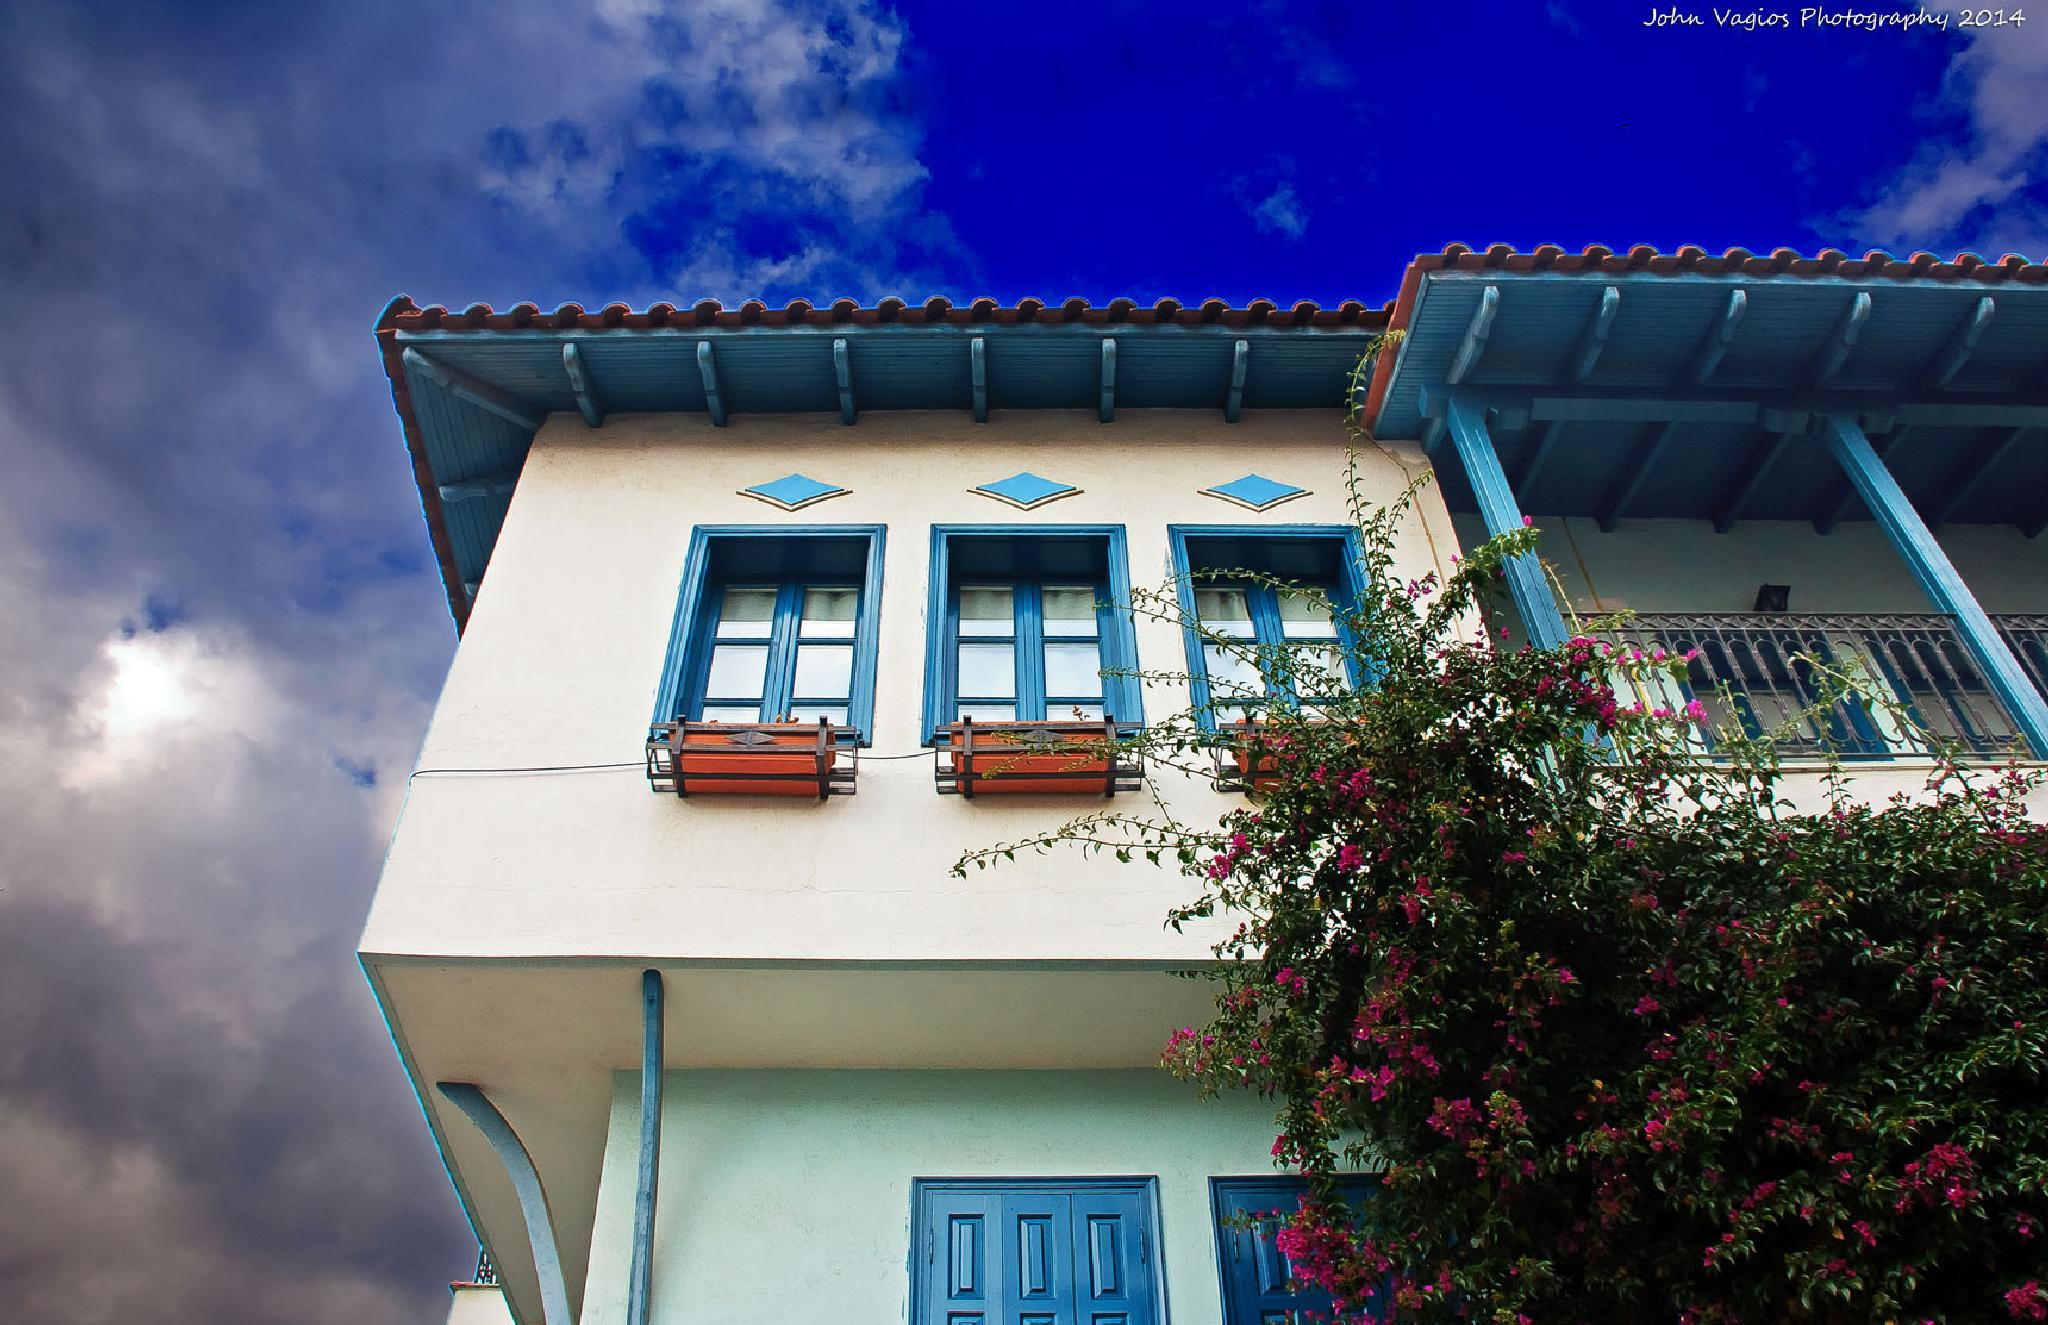 House in Thessaloniki by JohnVagios